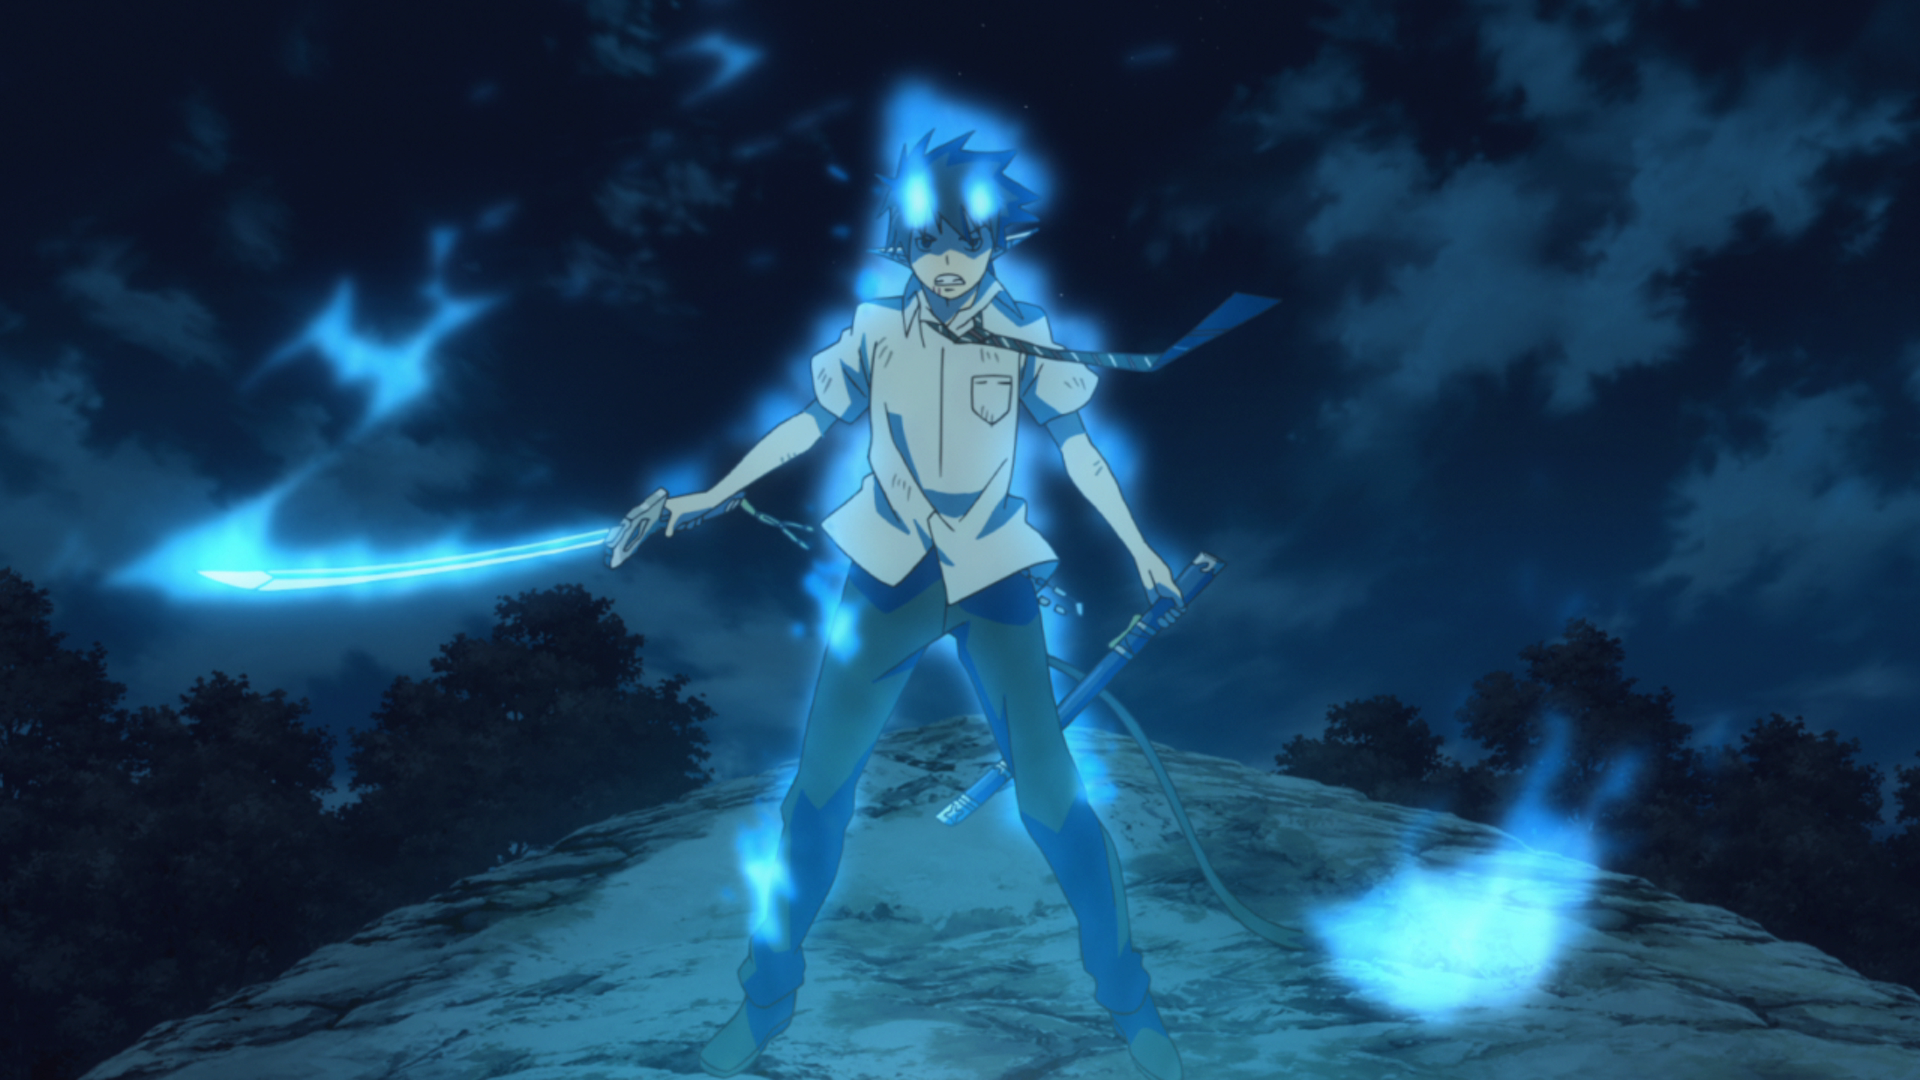 Blue Exorcist Wallpaper 1920x1080 Hd Wallpaper For Desktop